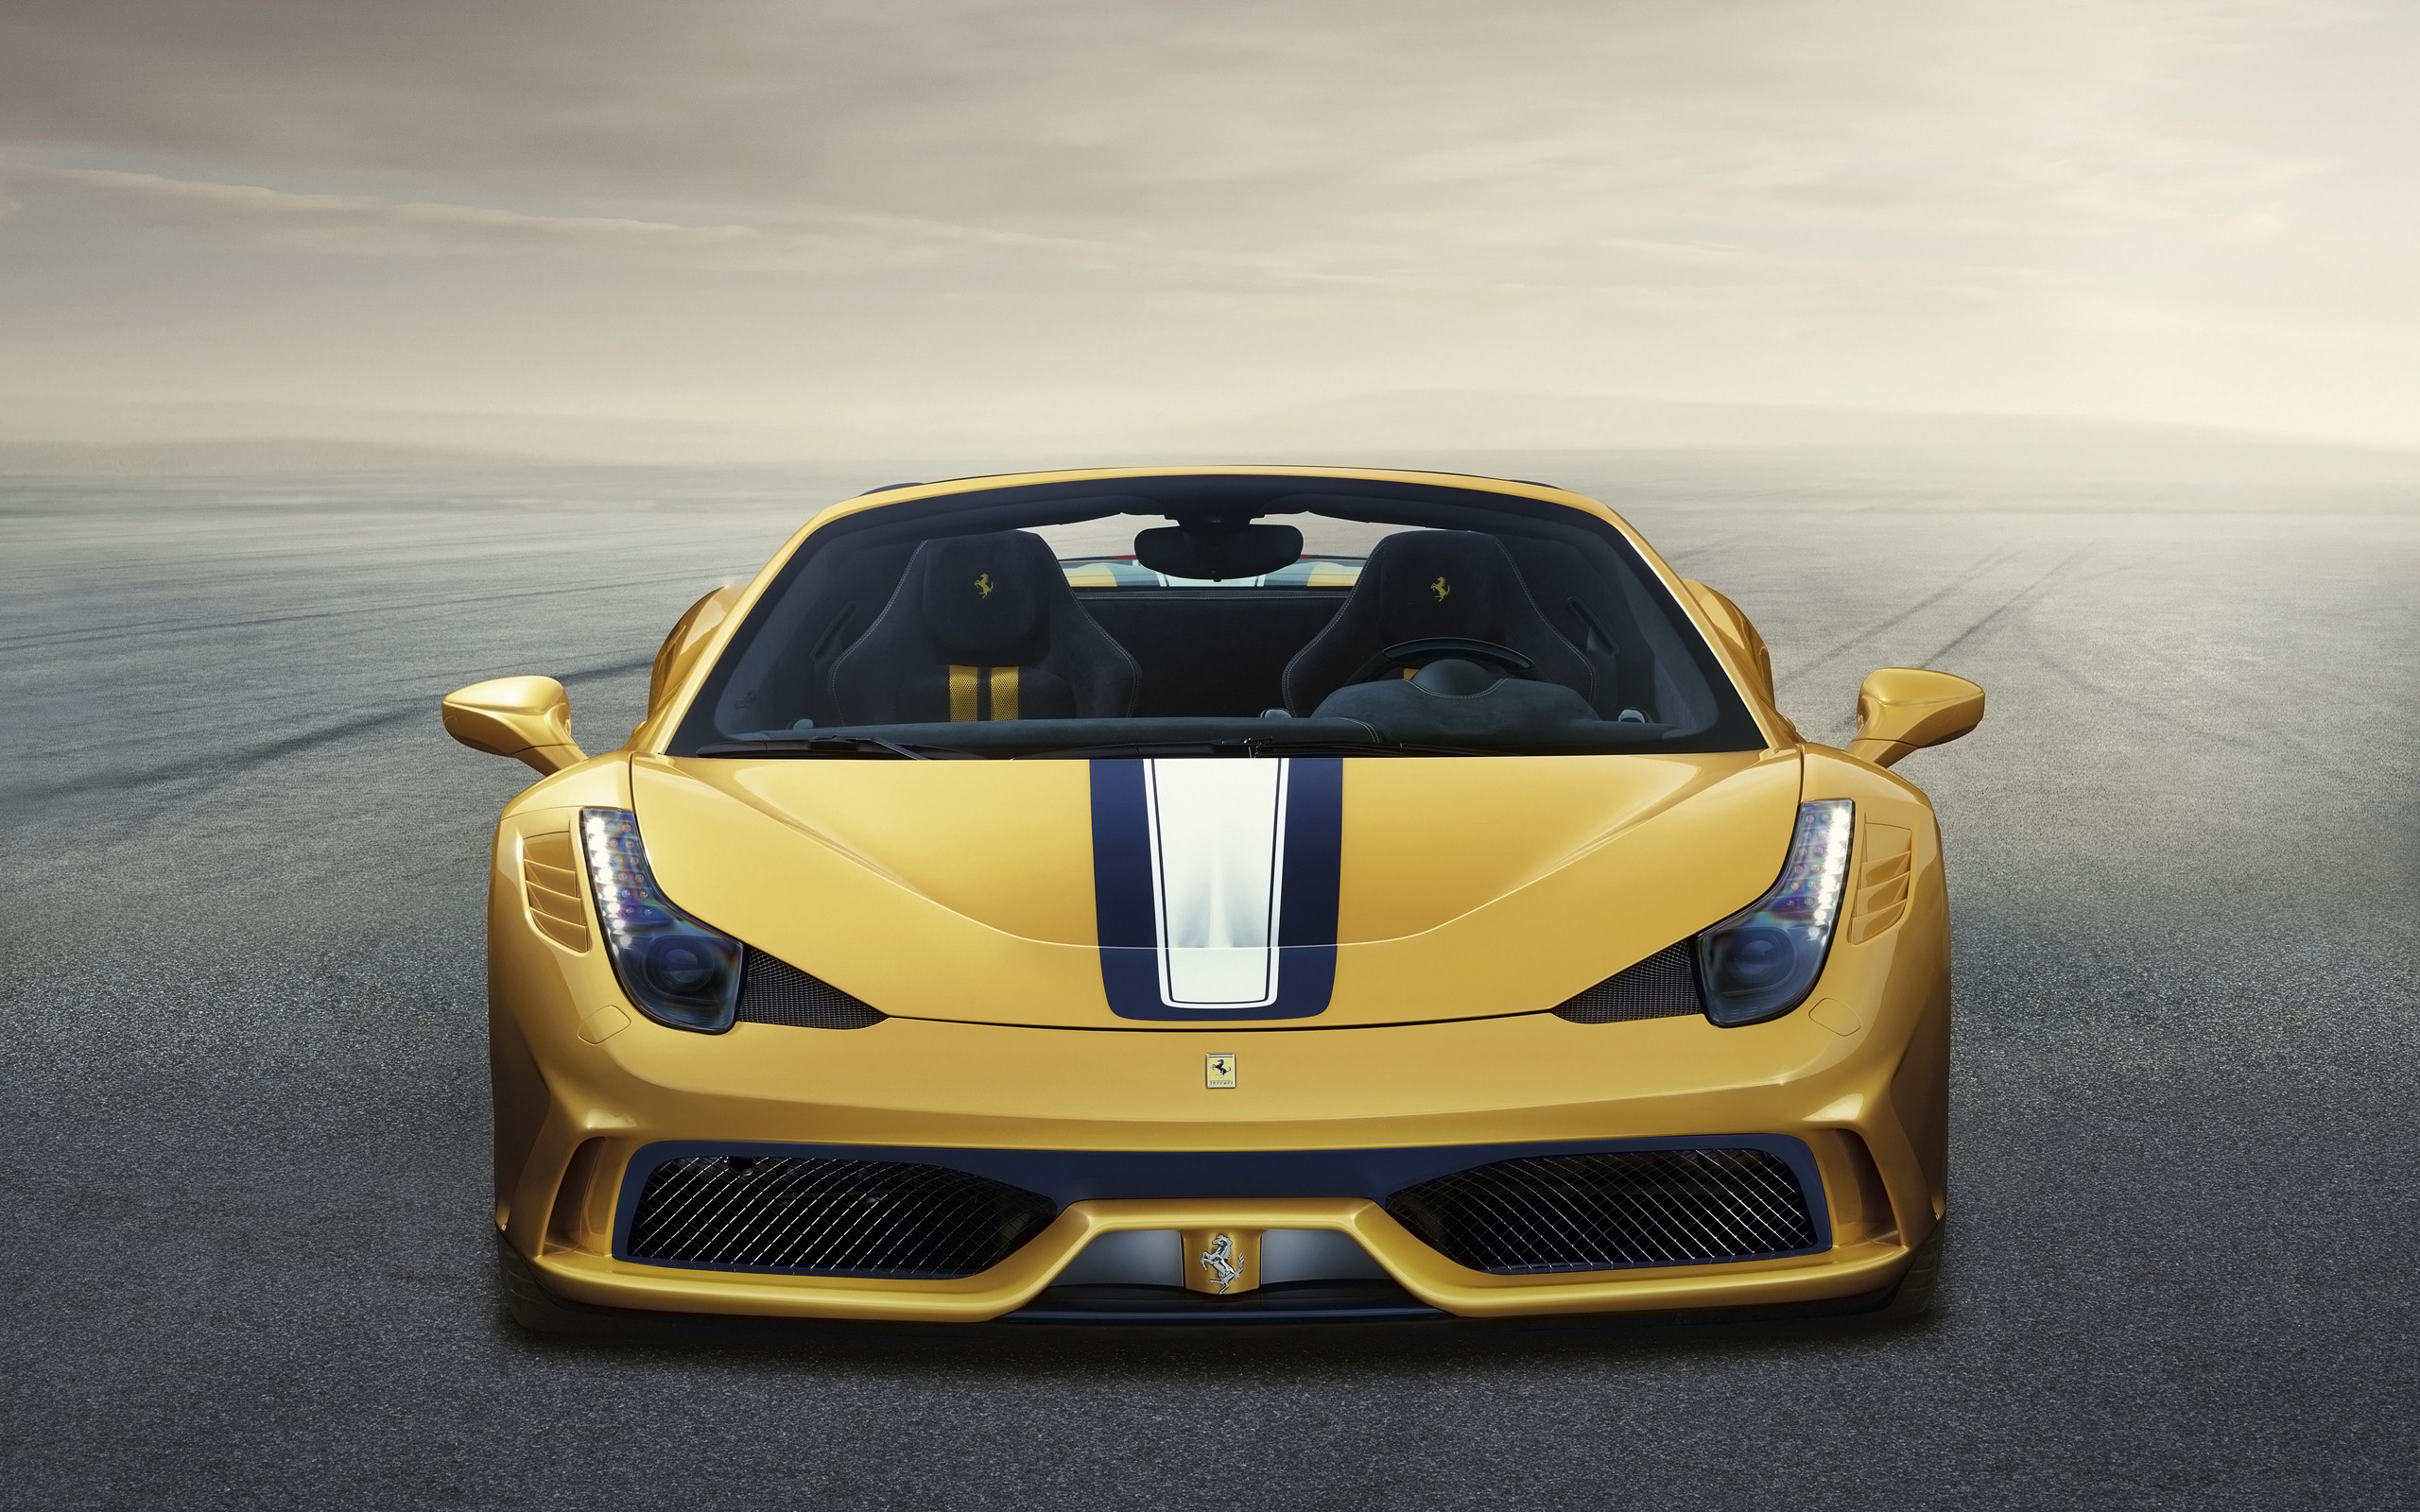 2015 Ferrari 458 Speciale A Wallpaper Hd Car Wallpapers Id 4848